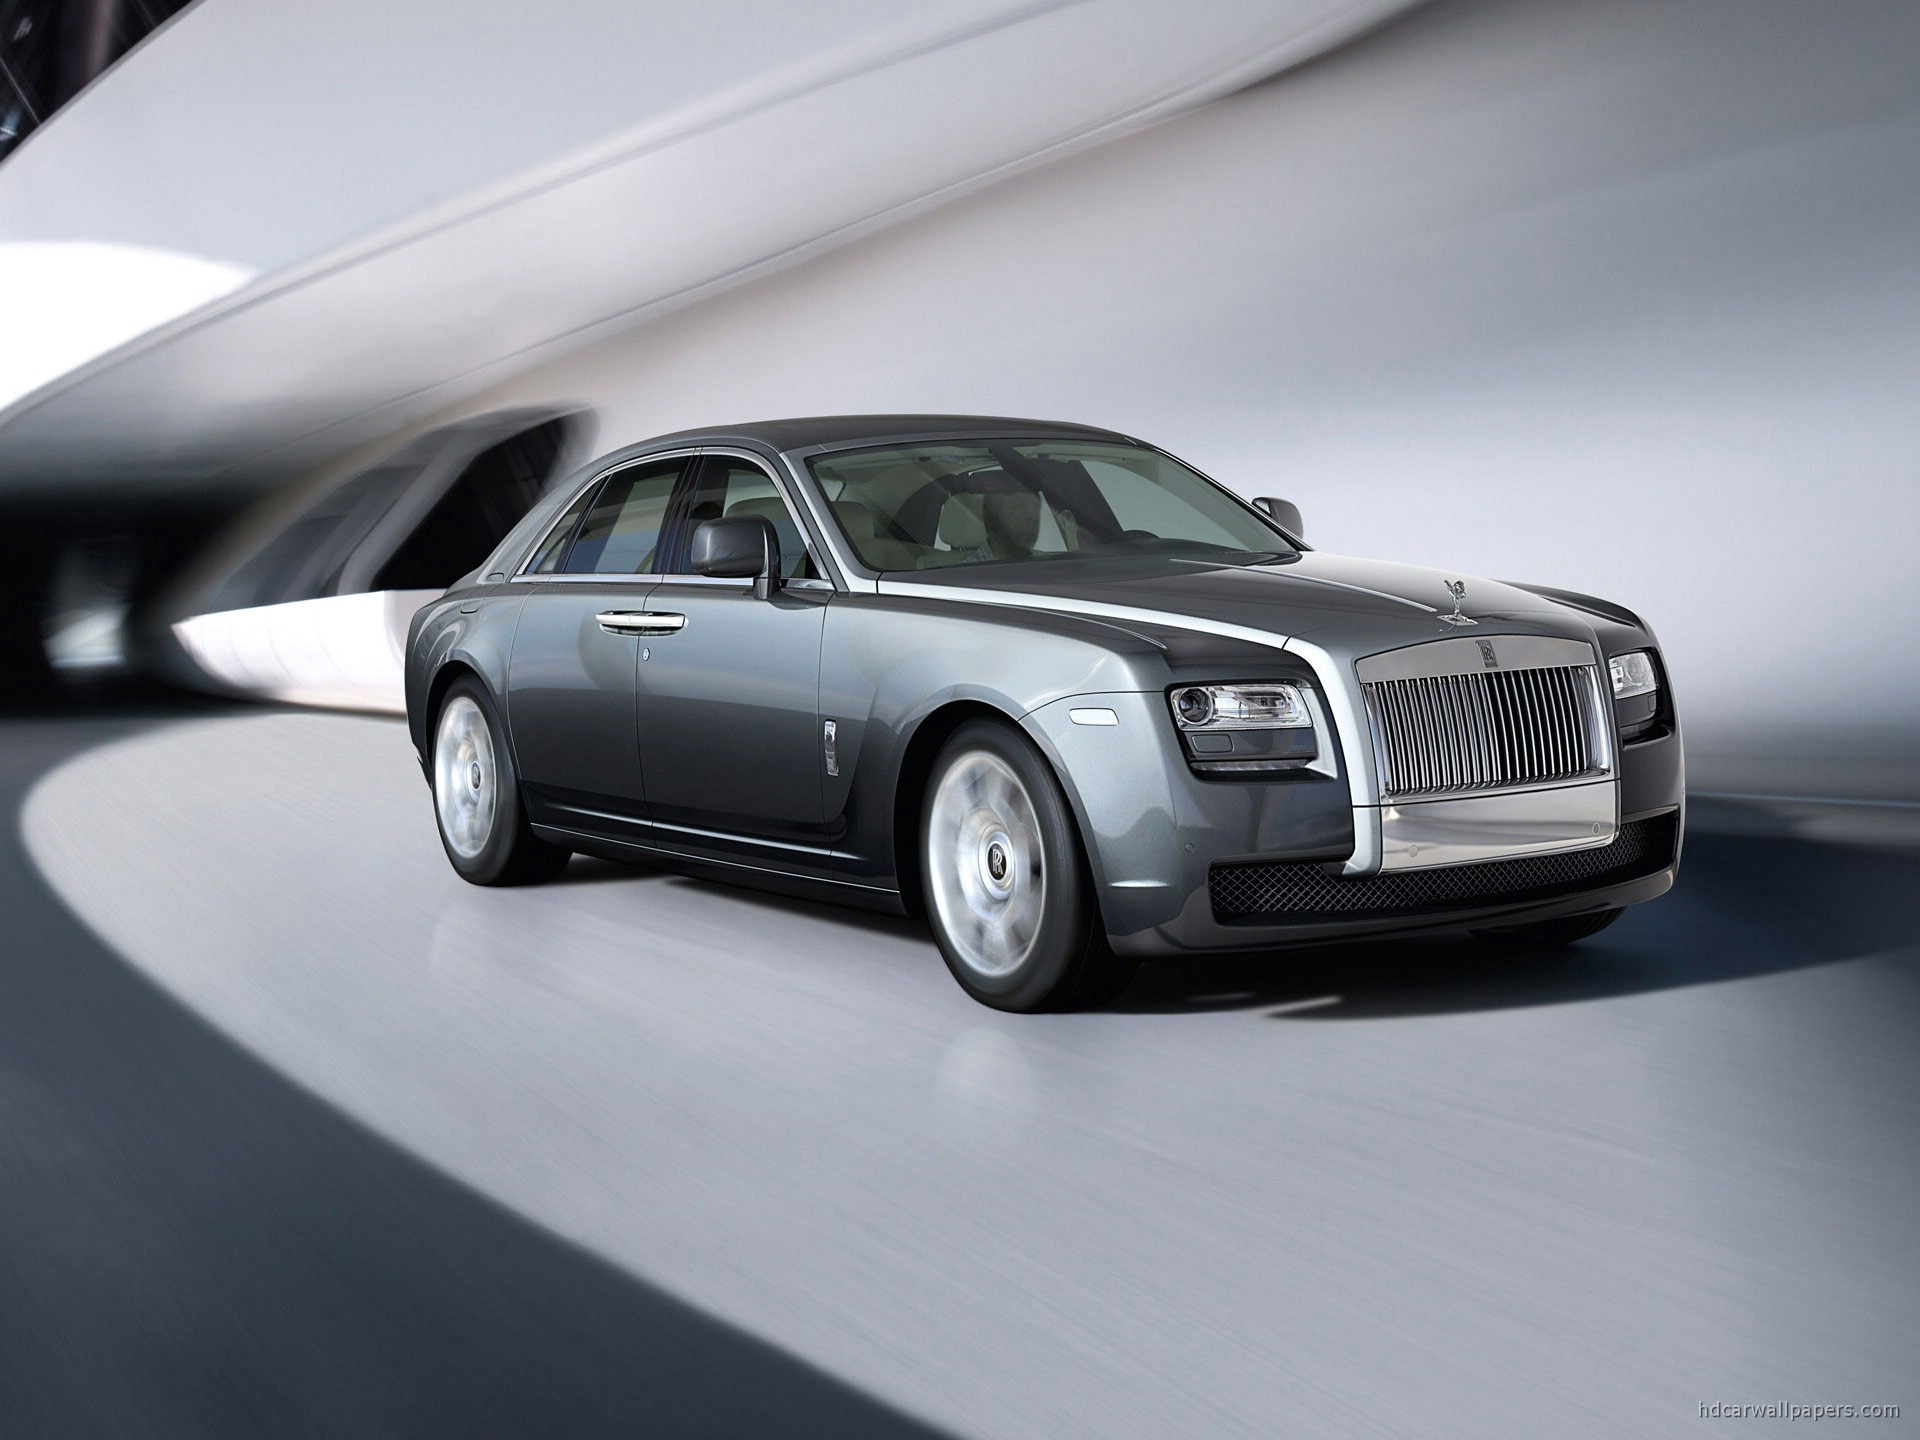 Rolls Royce Ghost Car Wallpaper Hd Car Wallpapers Id 1183